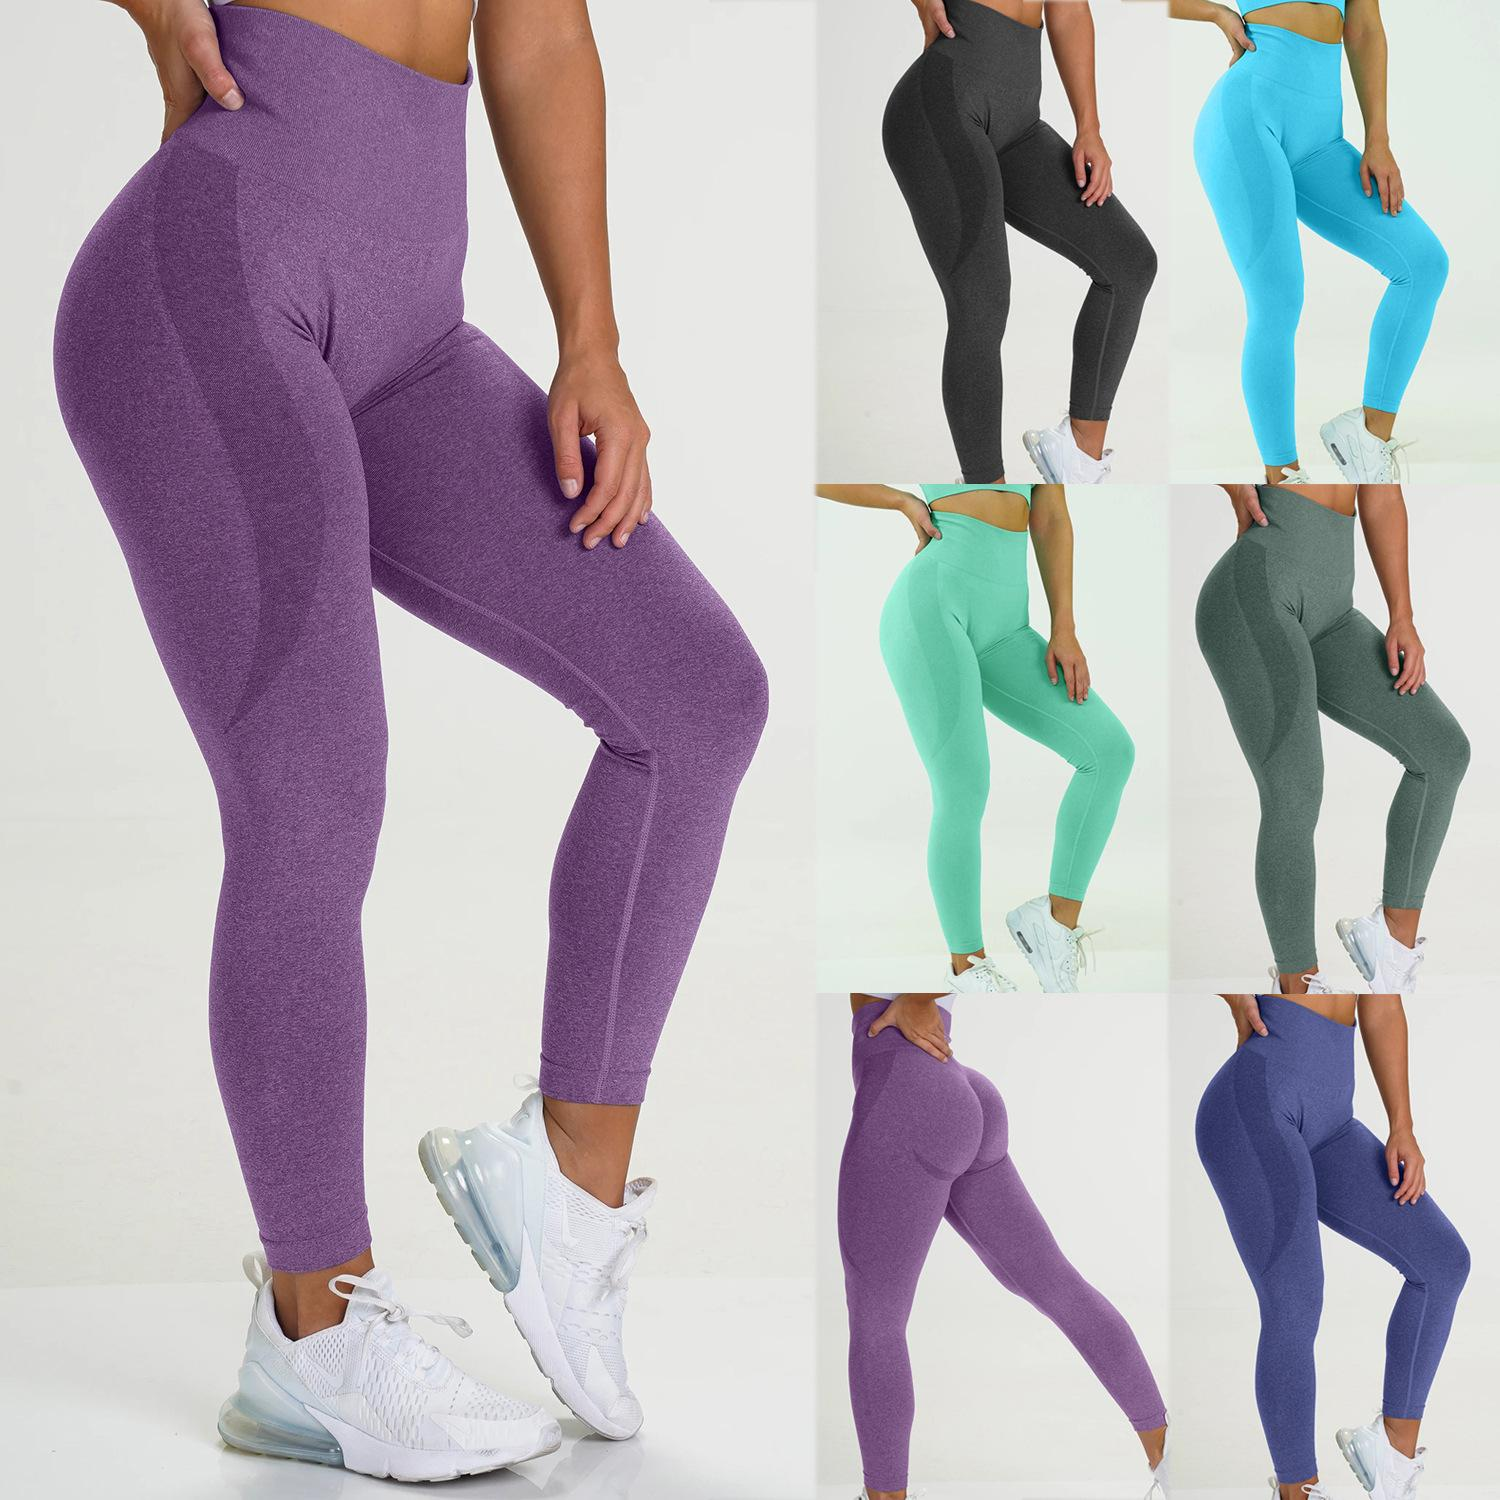 Women Yoga Pant Fitness Pure Color Casual Sports Tight-fitting Comfortable Concise Seamless Yoga Pants Hot Style Trousers 2021